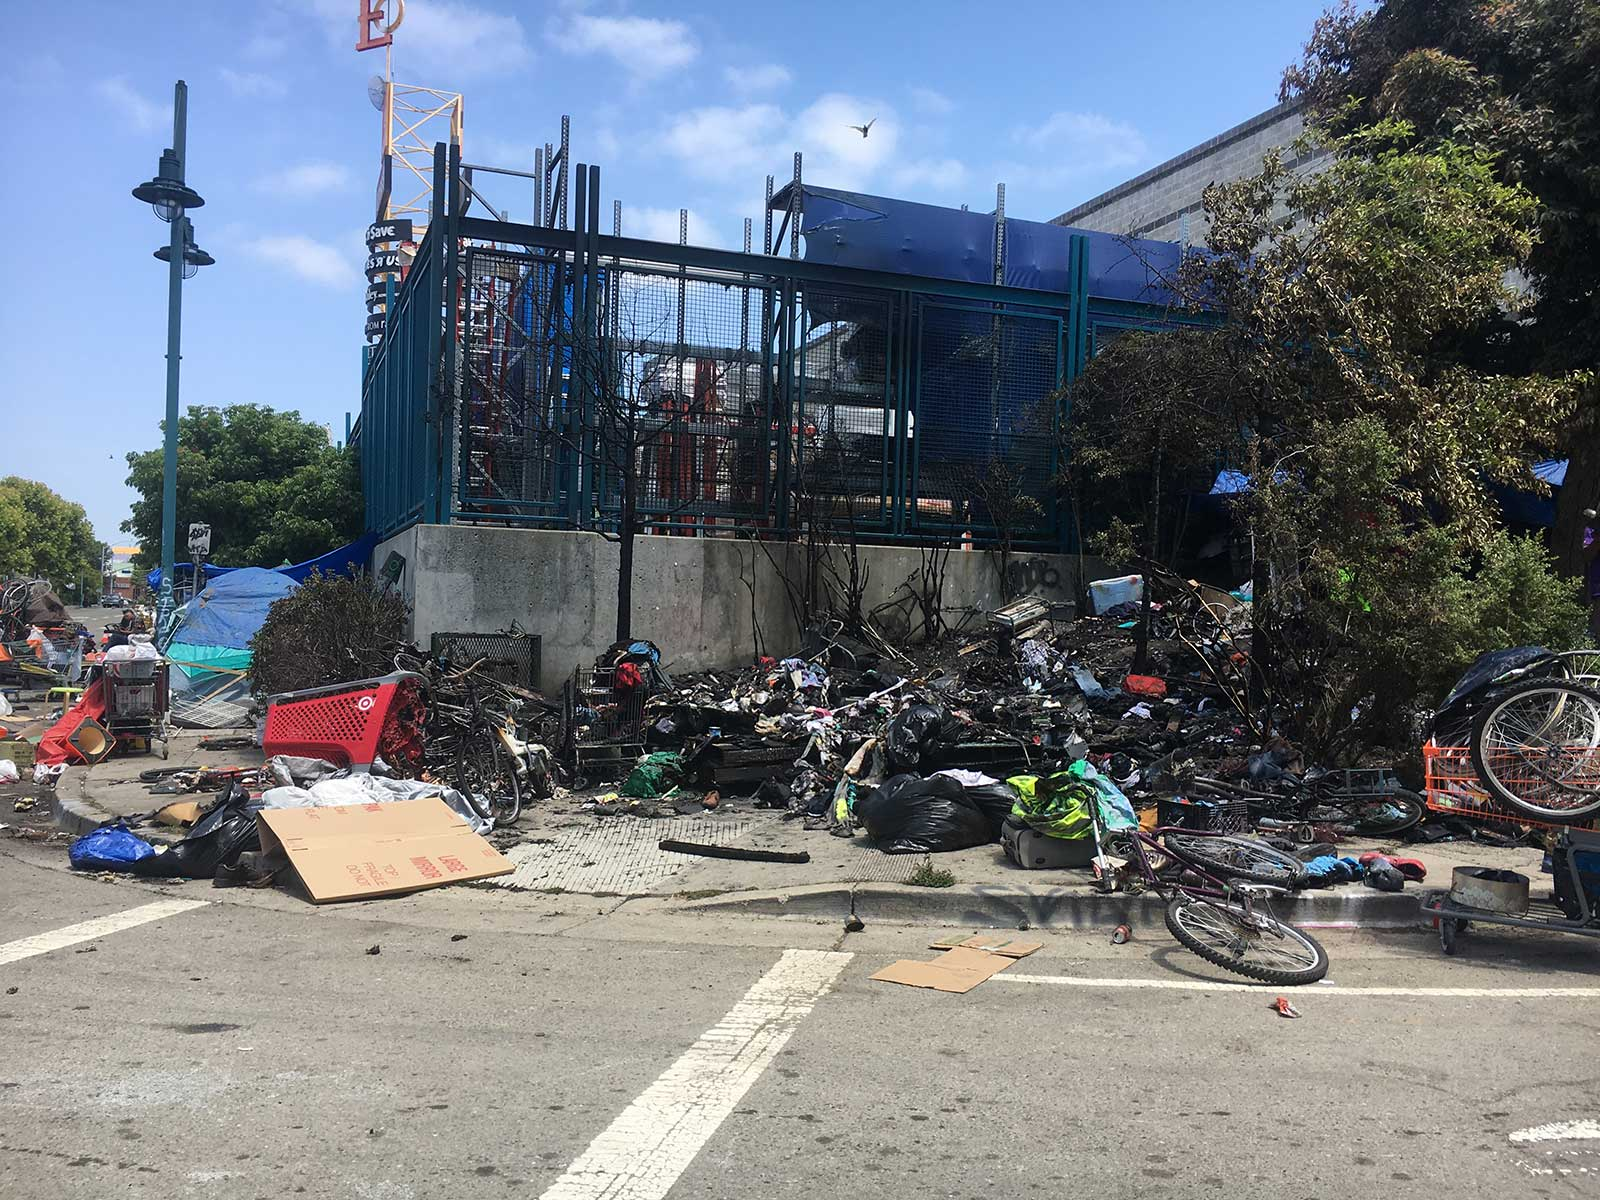 7383fa078424 'Explosion' at Home Depot Homeless Encampment rattles Emeryville and West  Oakland Neighbors